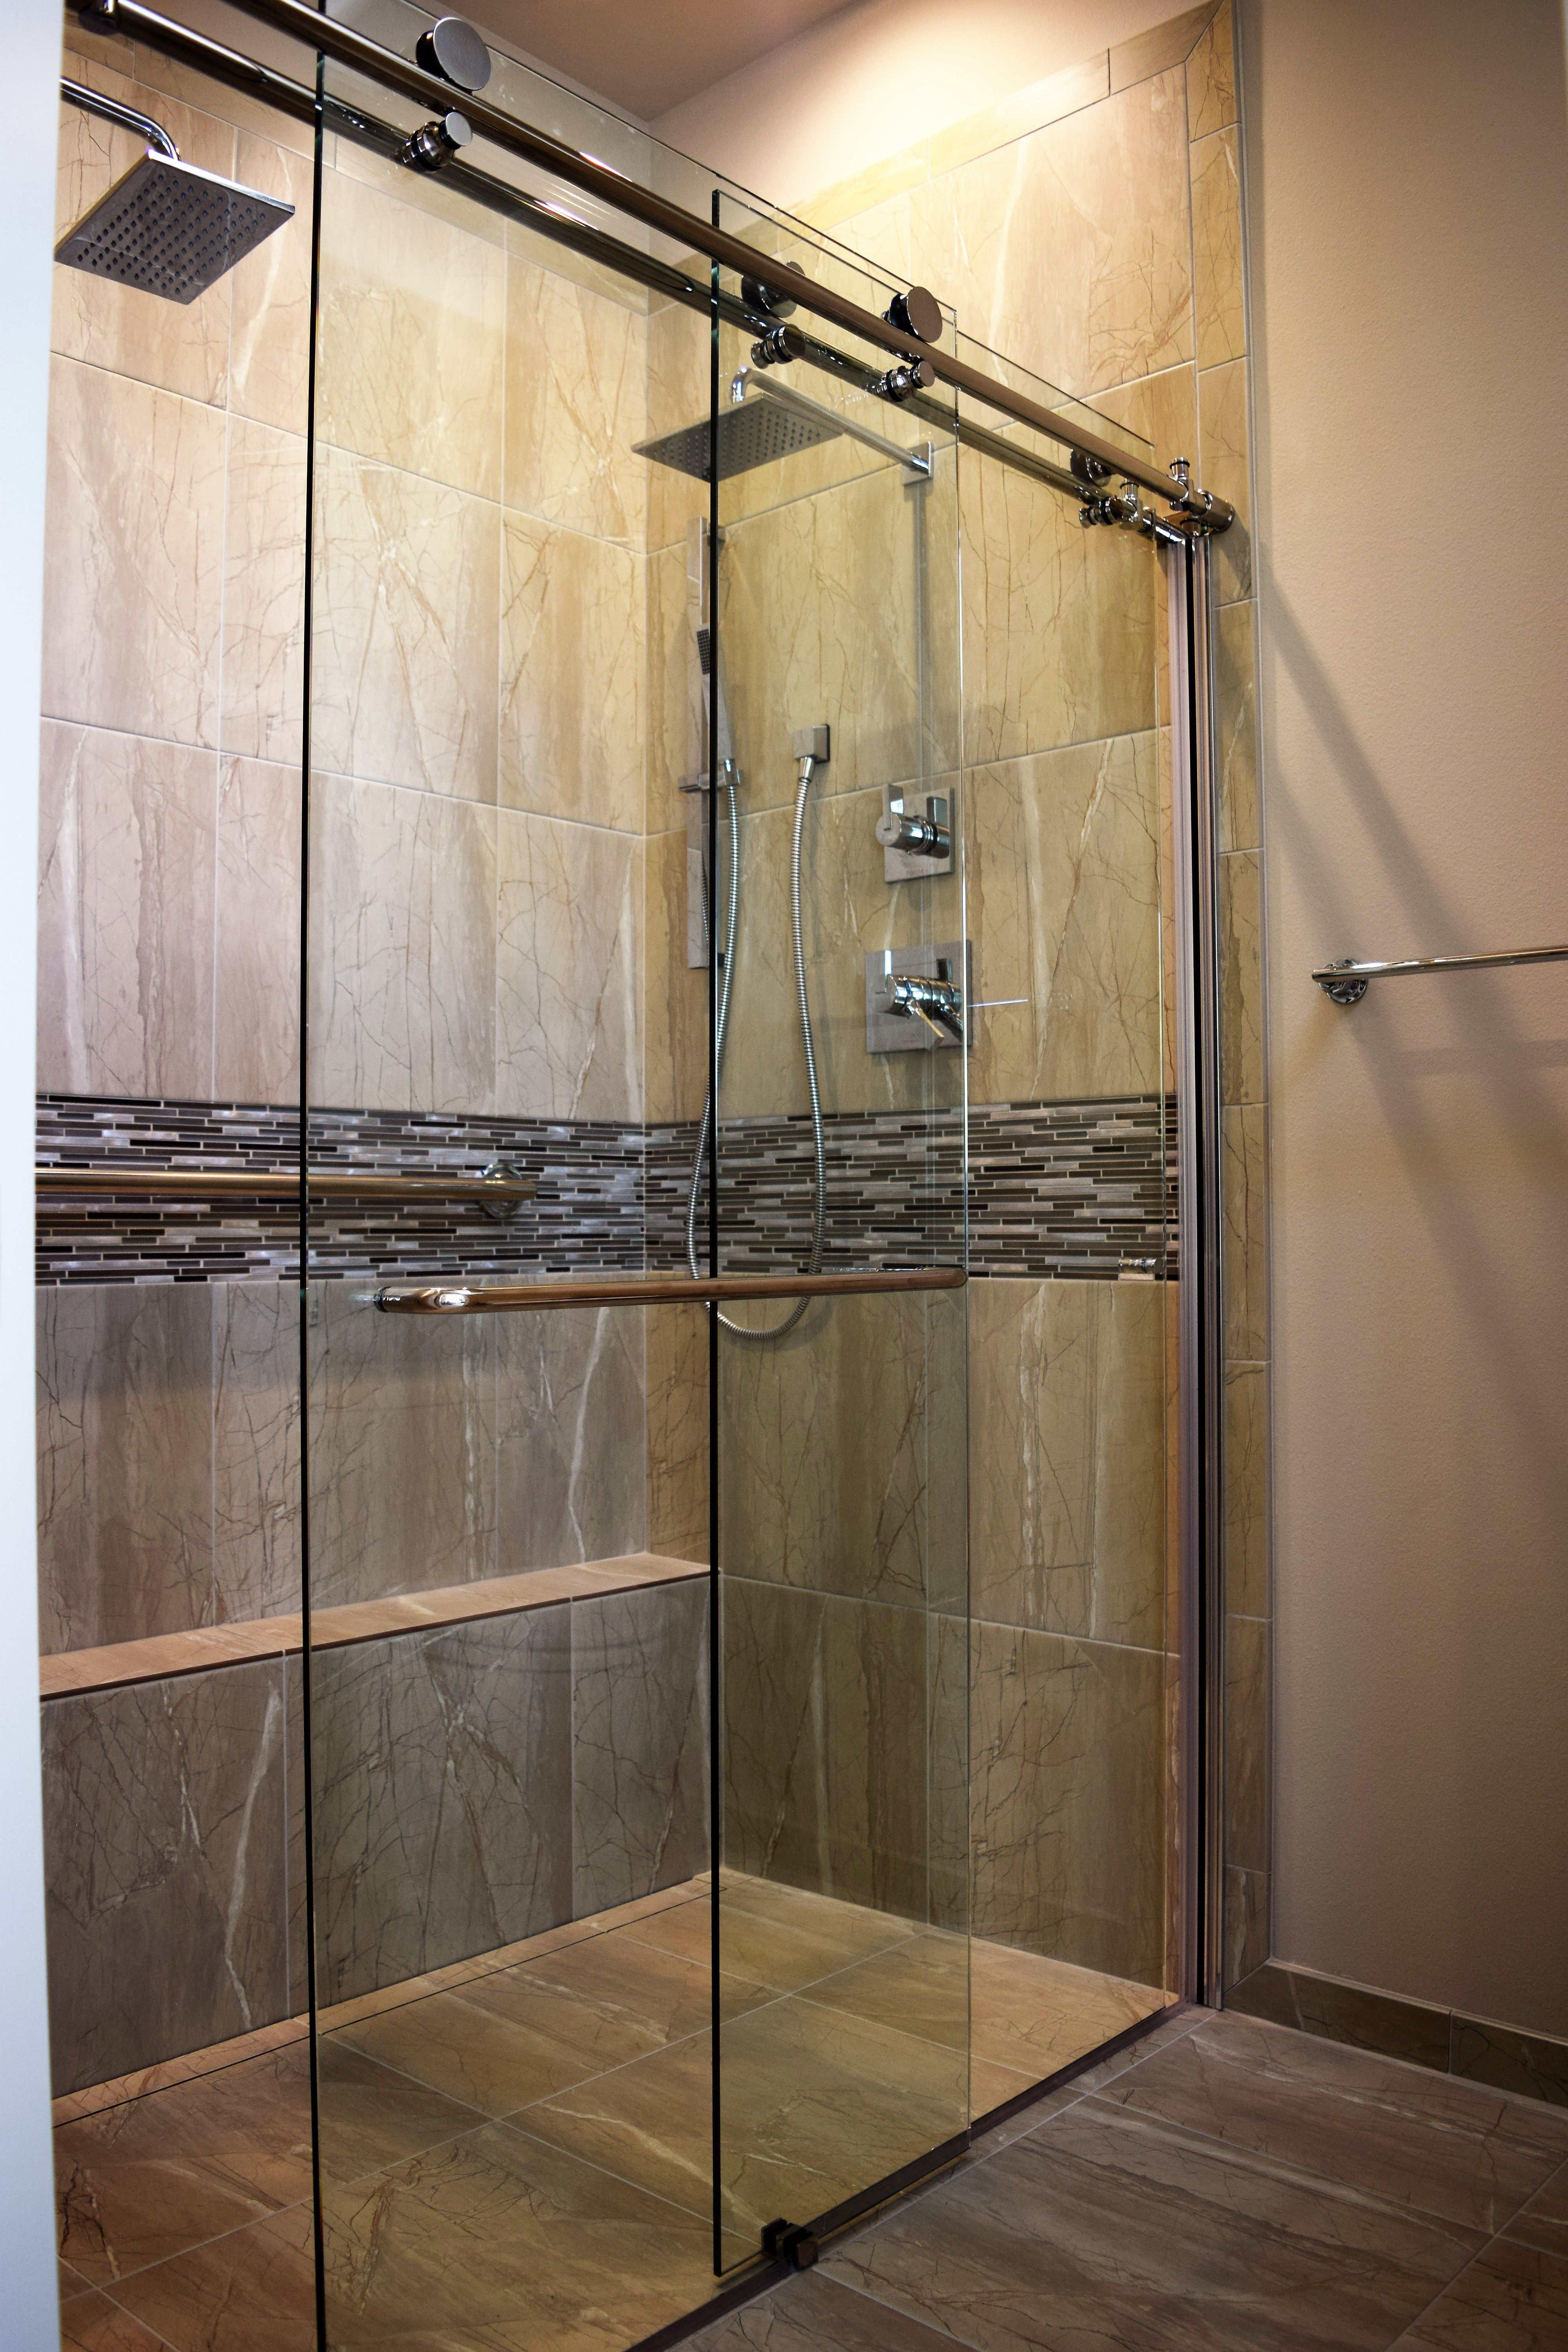 Curbless tile shower with dual rain heads. Much nicer than the ...